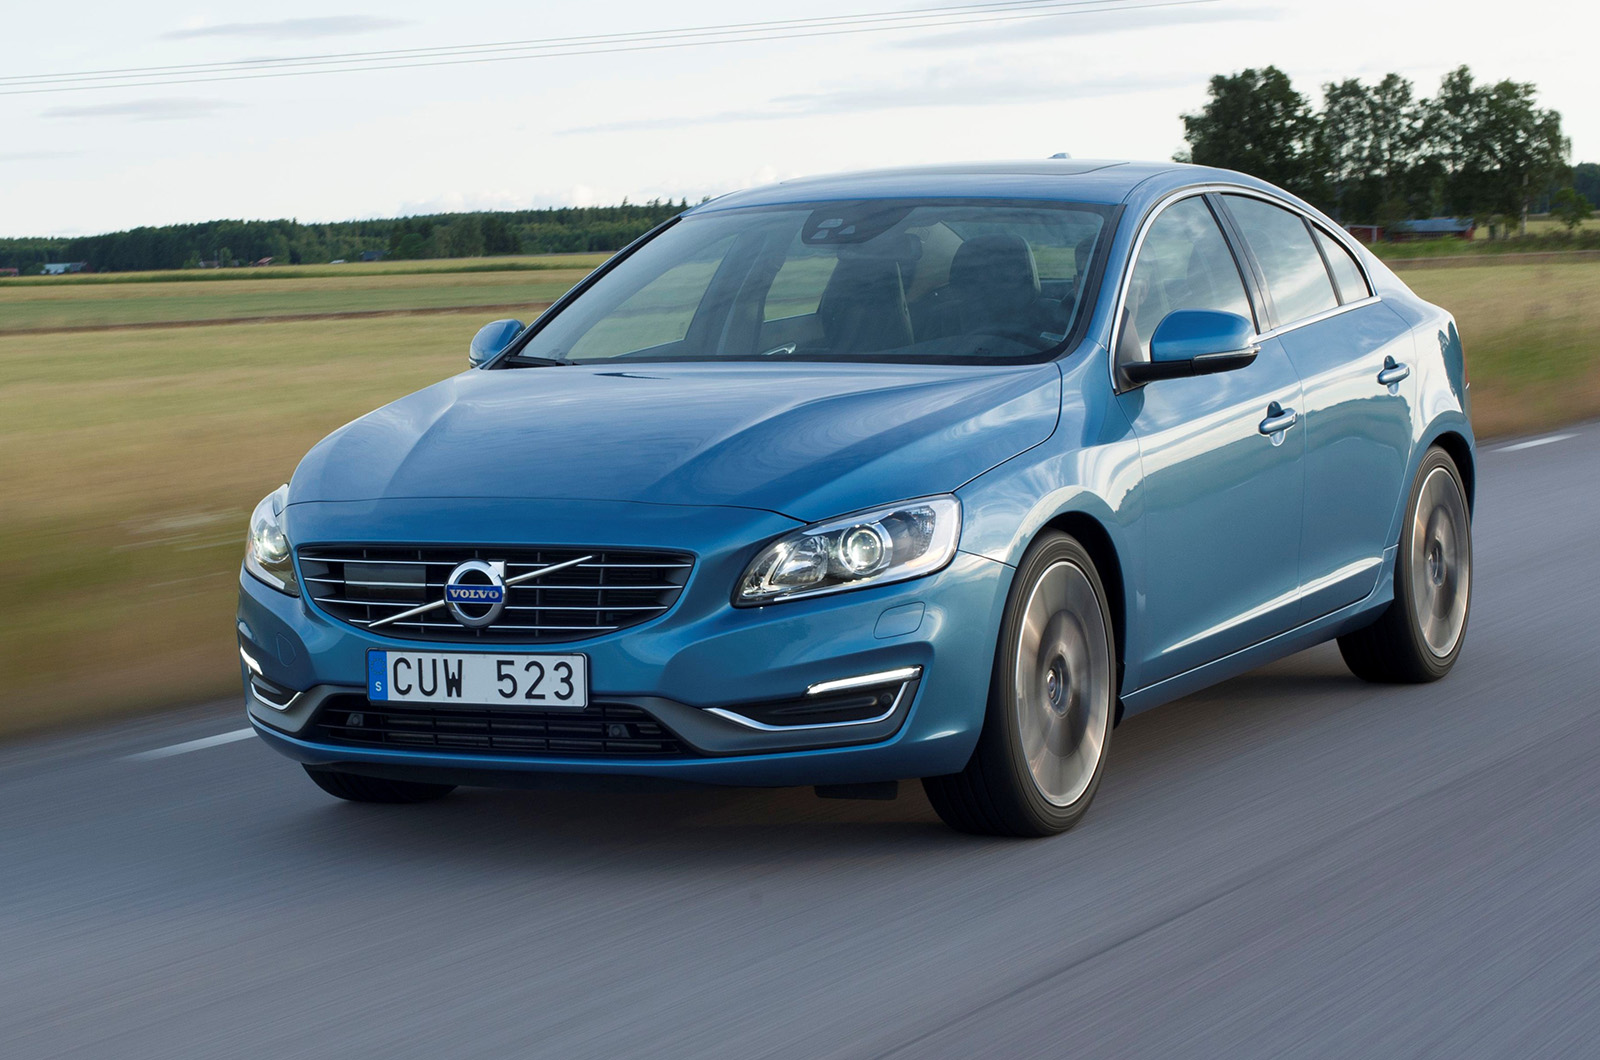 2014 volvo s60 t6 geartronic first drive review autocar. Black Bedroom Furniture Sets. Home Design Ideas